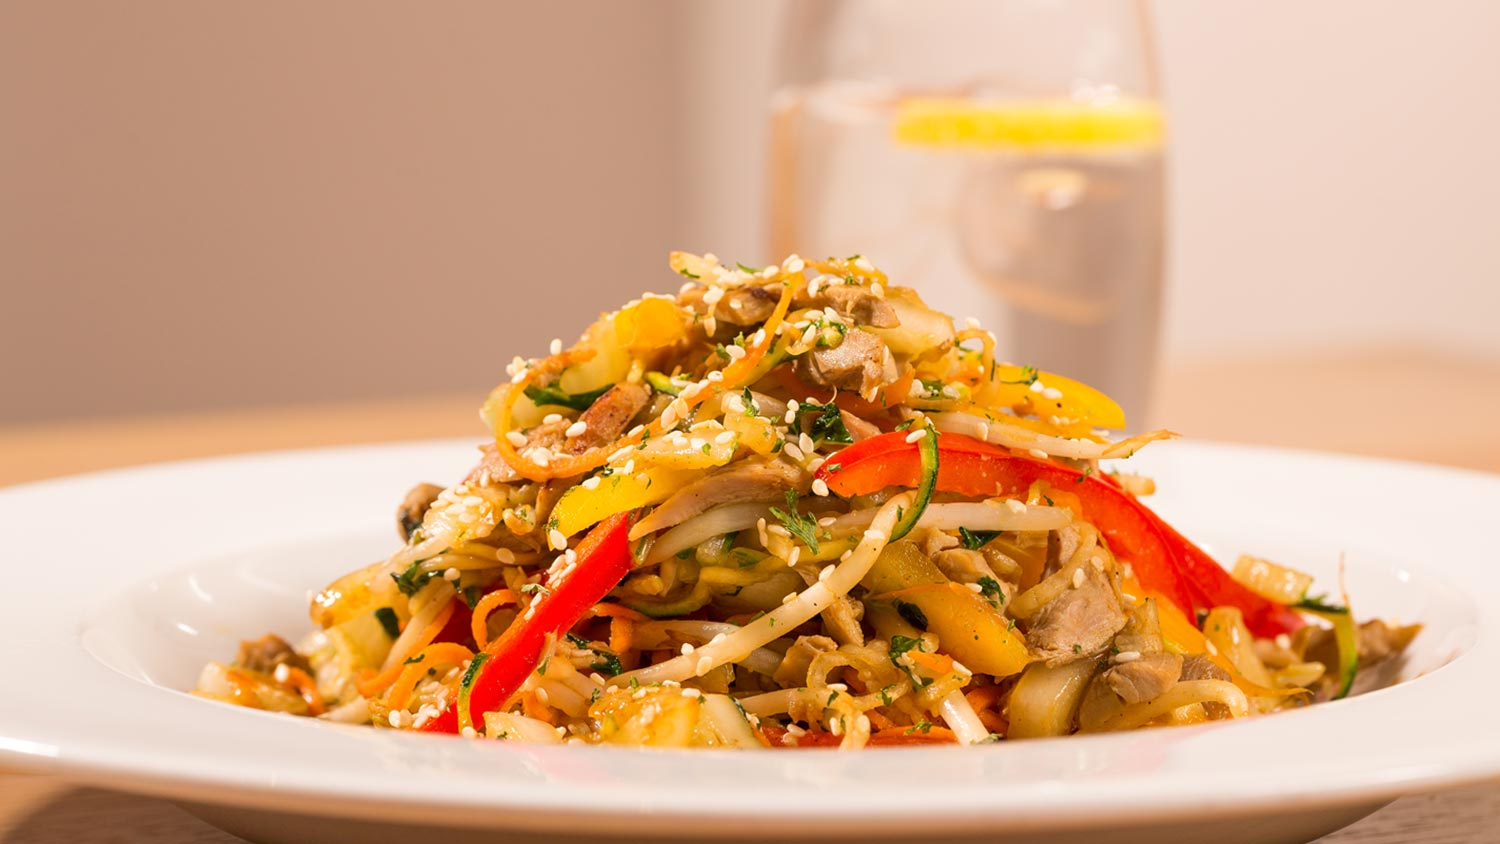 This stir fry brings international flavour to the RNLI College